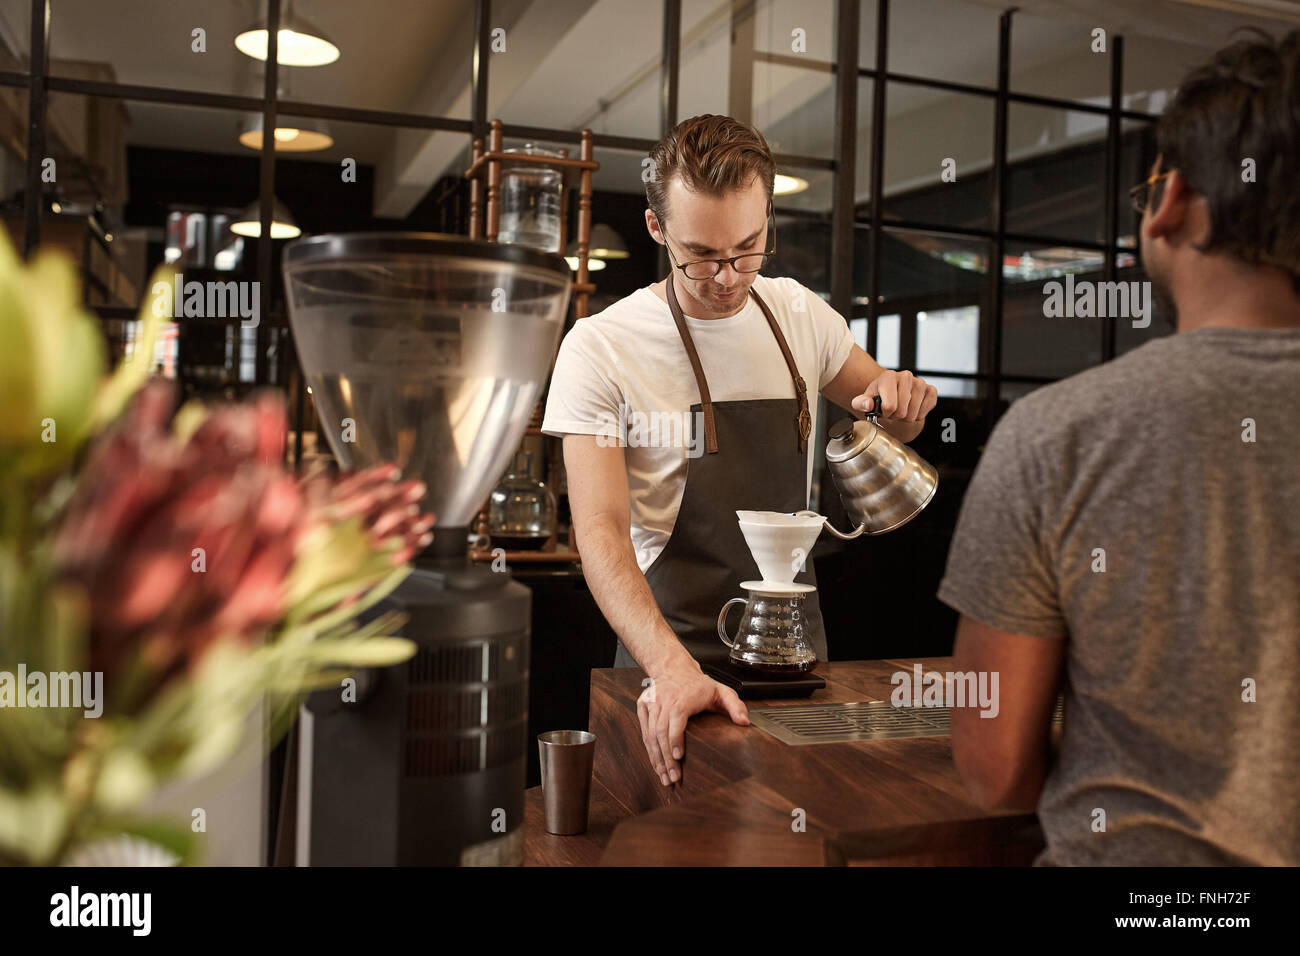 Barista pouring coffee through filter in modern cafe - Stock Image